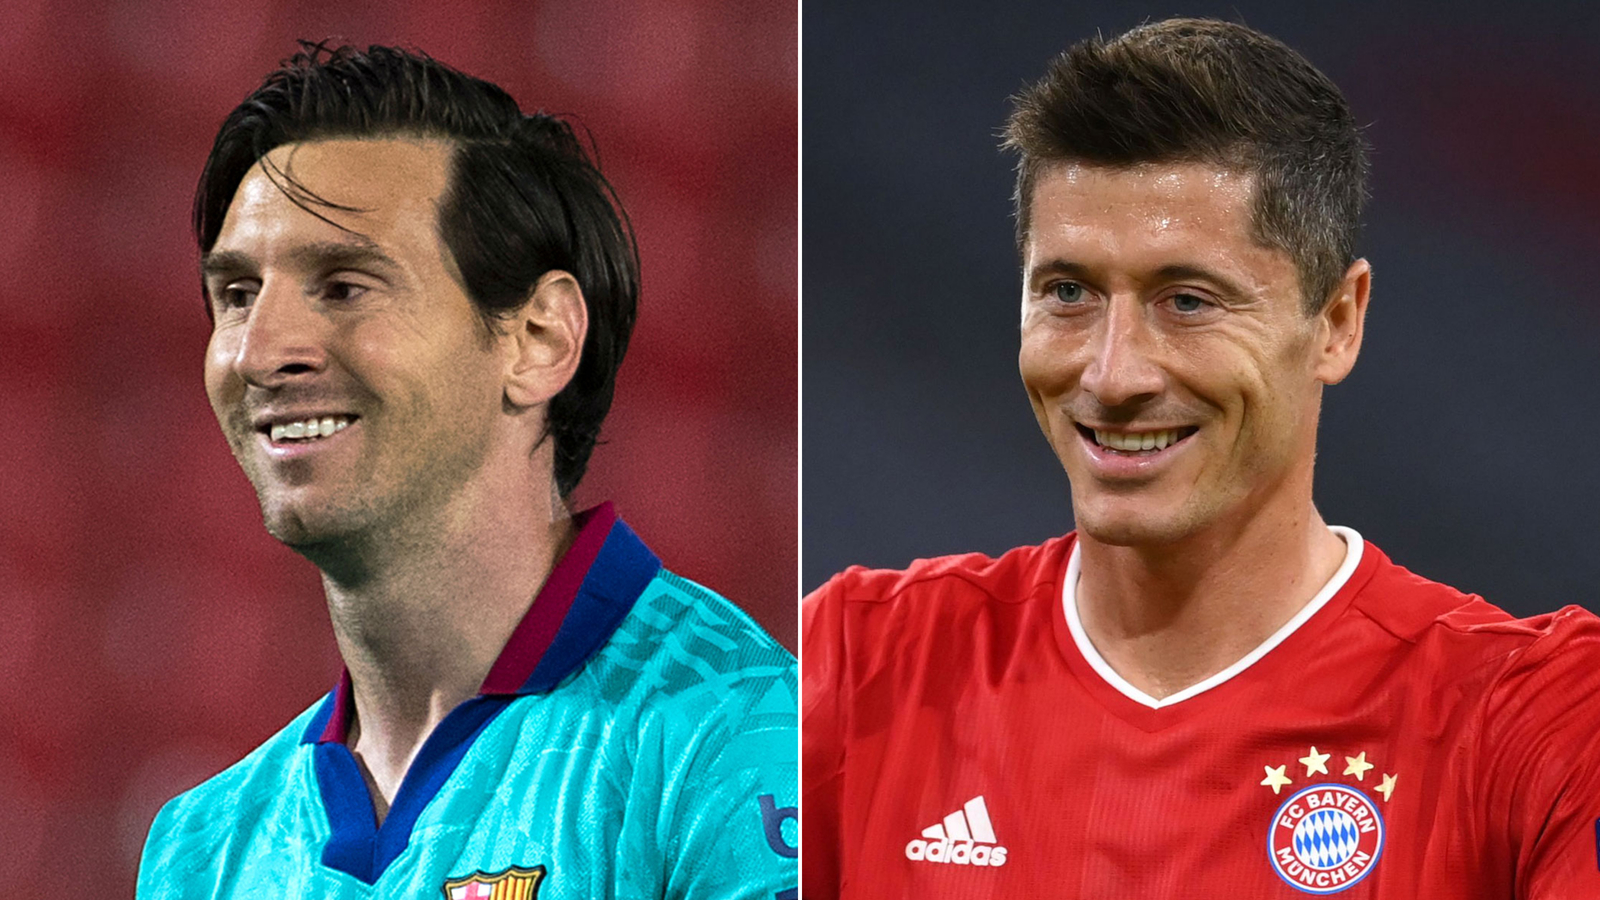 Lionel Messi meets Robert Lewandowski as Barcelona faces Bayern Munich in a clash of titans